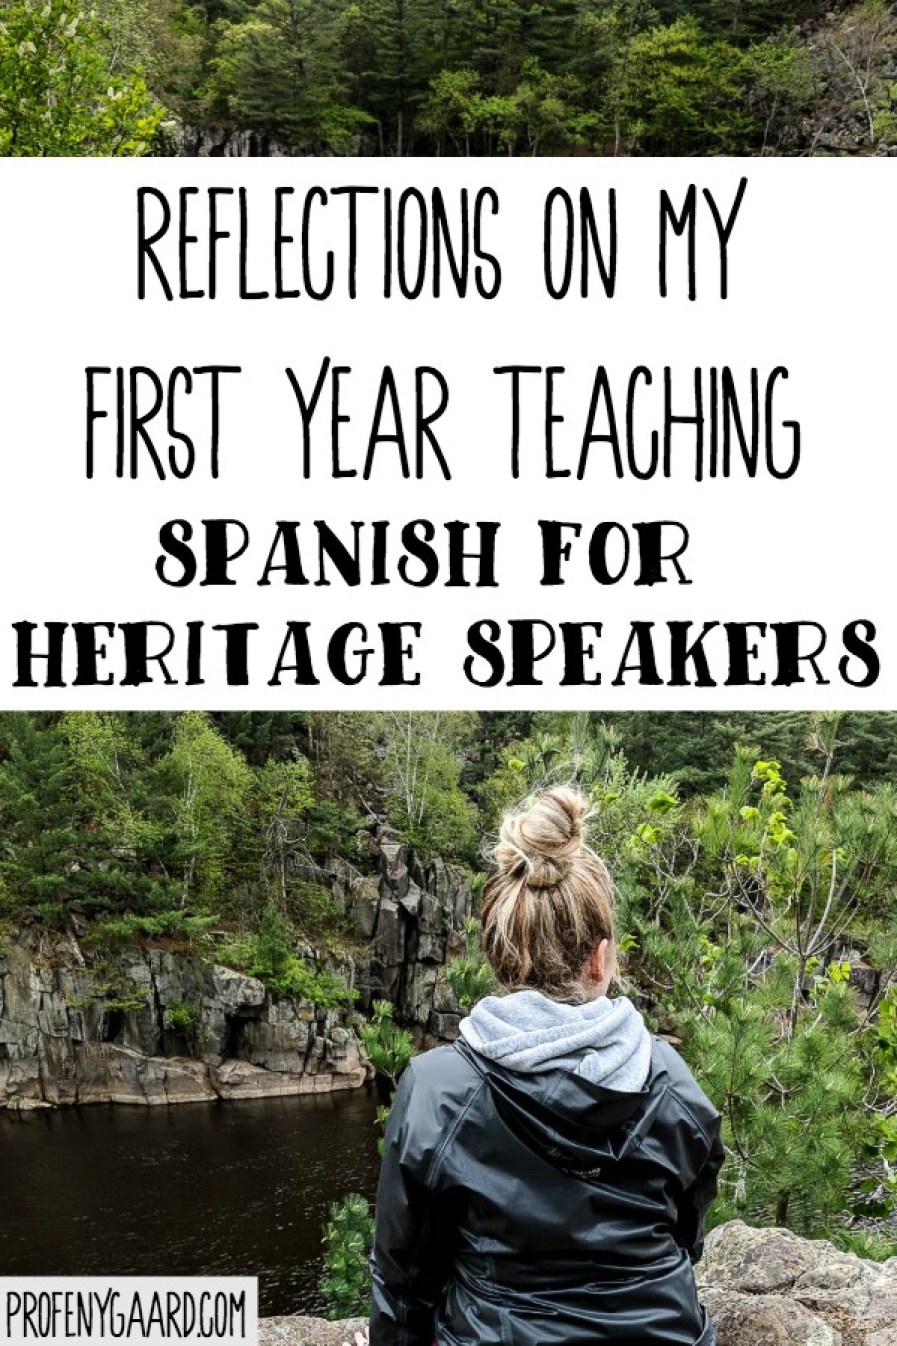 reflections on my first year teaching Spanish for Heritage Speakers